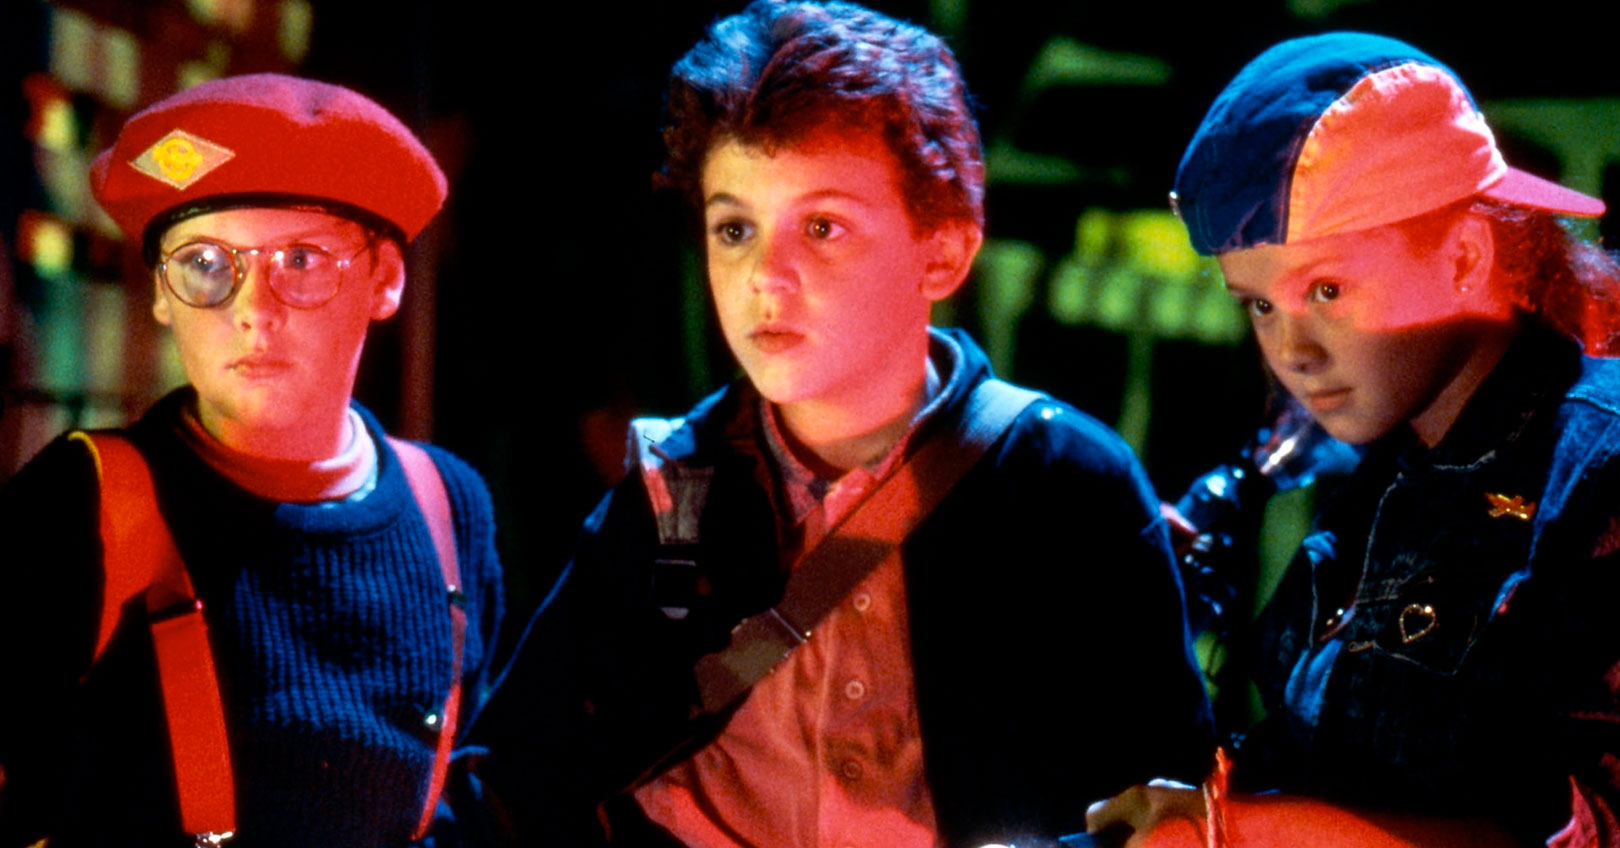 Little Monsters - William Murray Weiss, Fred Savage, and Amber Barretto